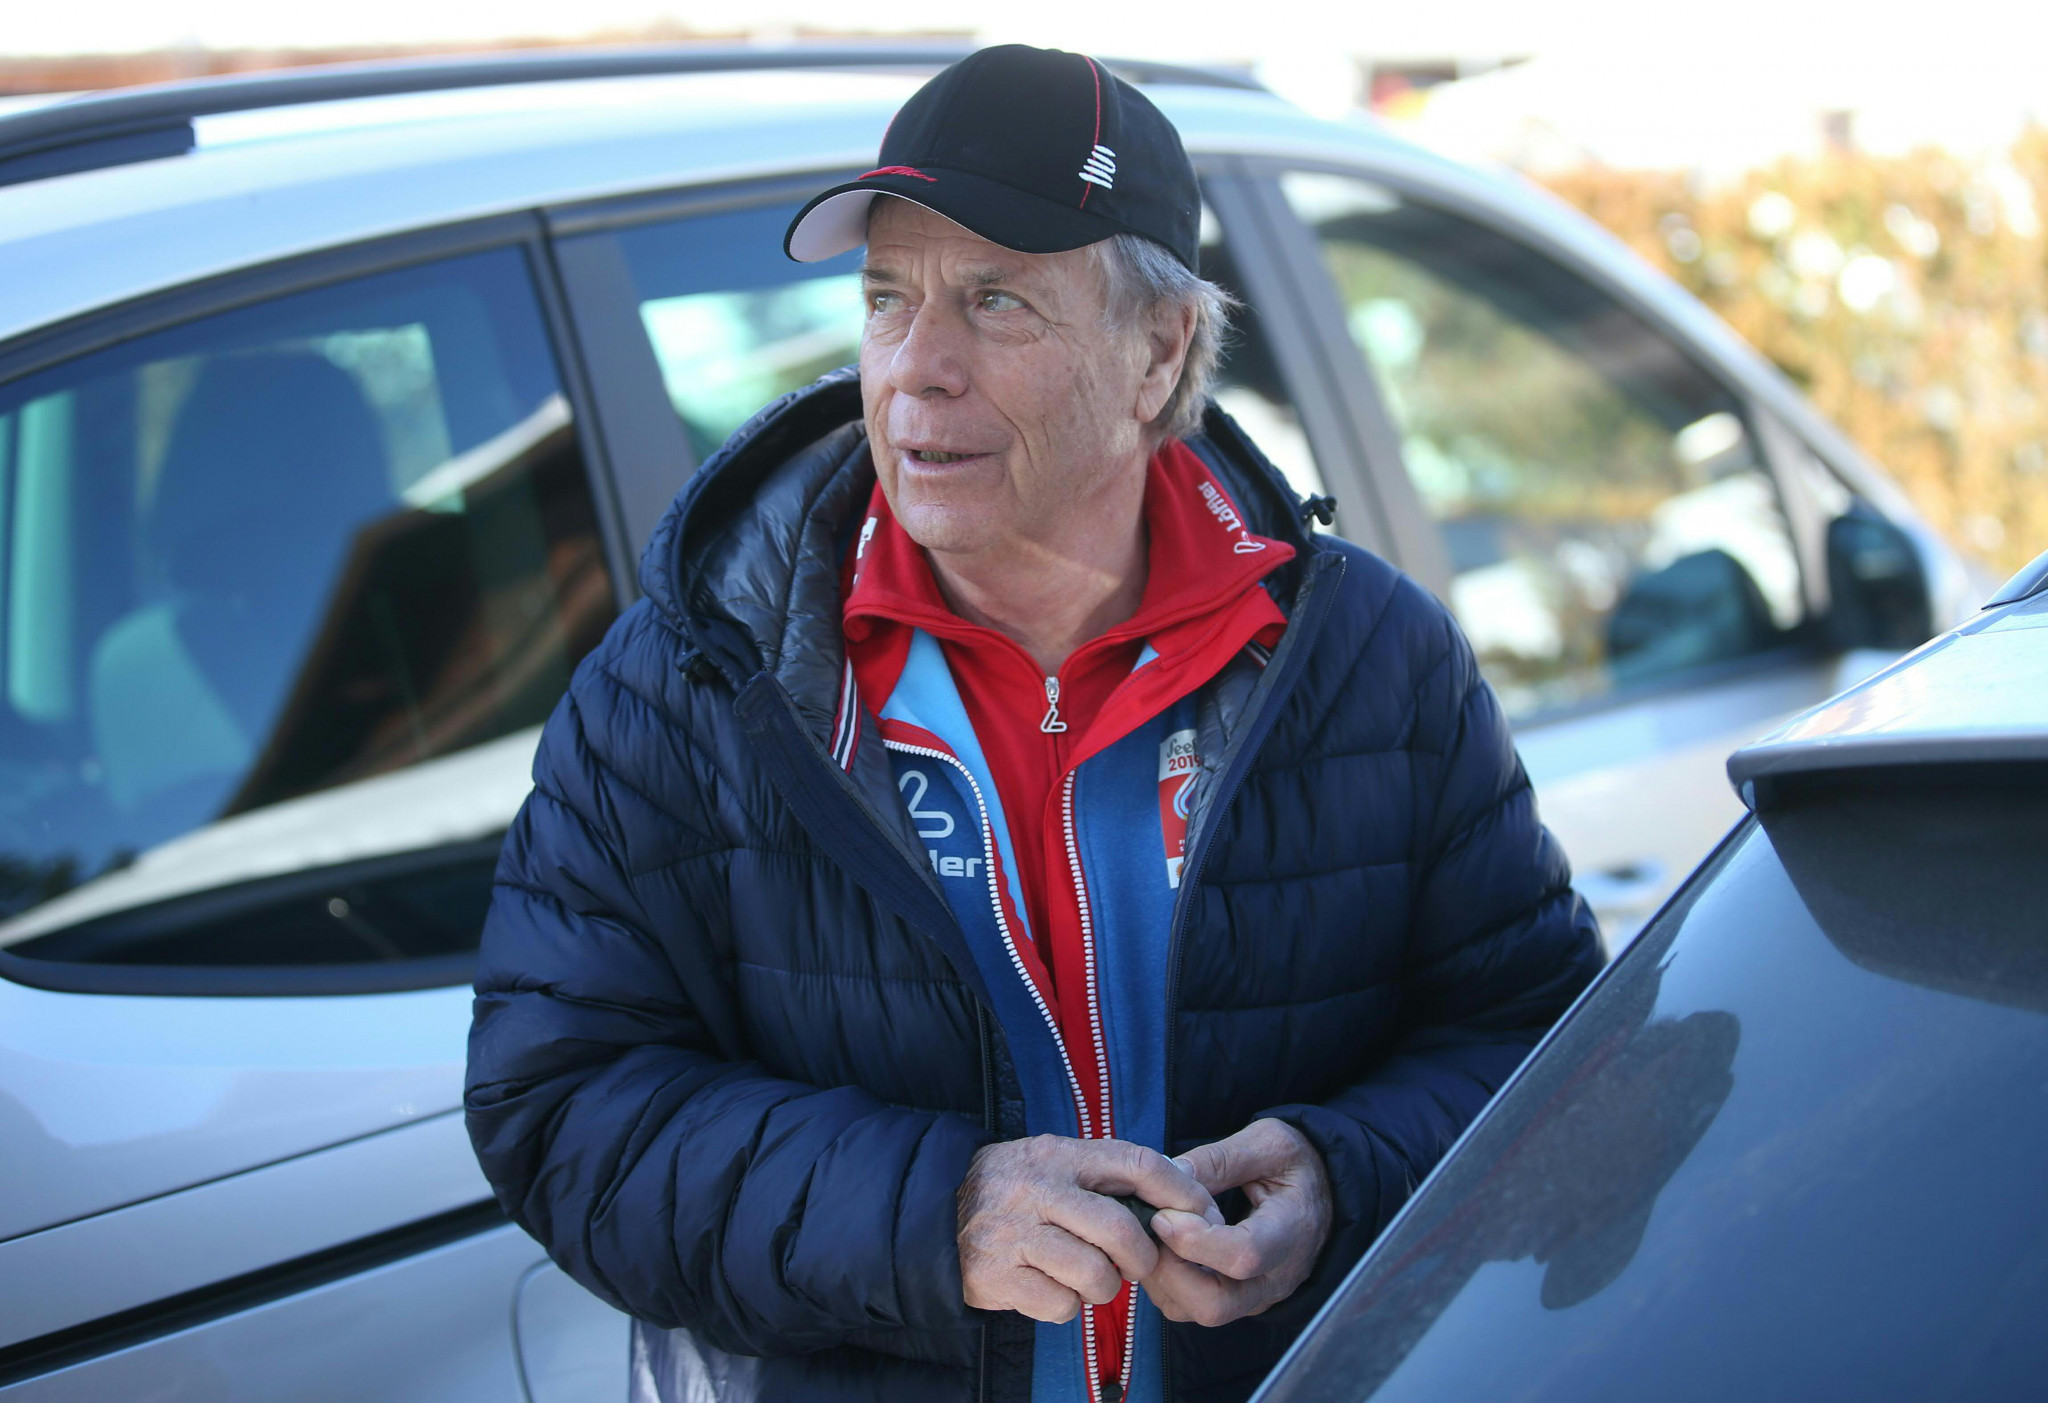 Austrian Ski Federation President Peter Schröcksnadel said the authorities have uncovered an